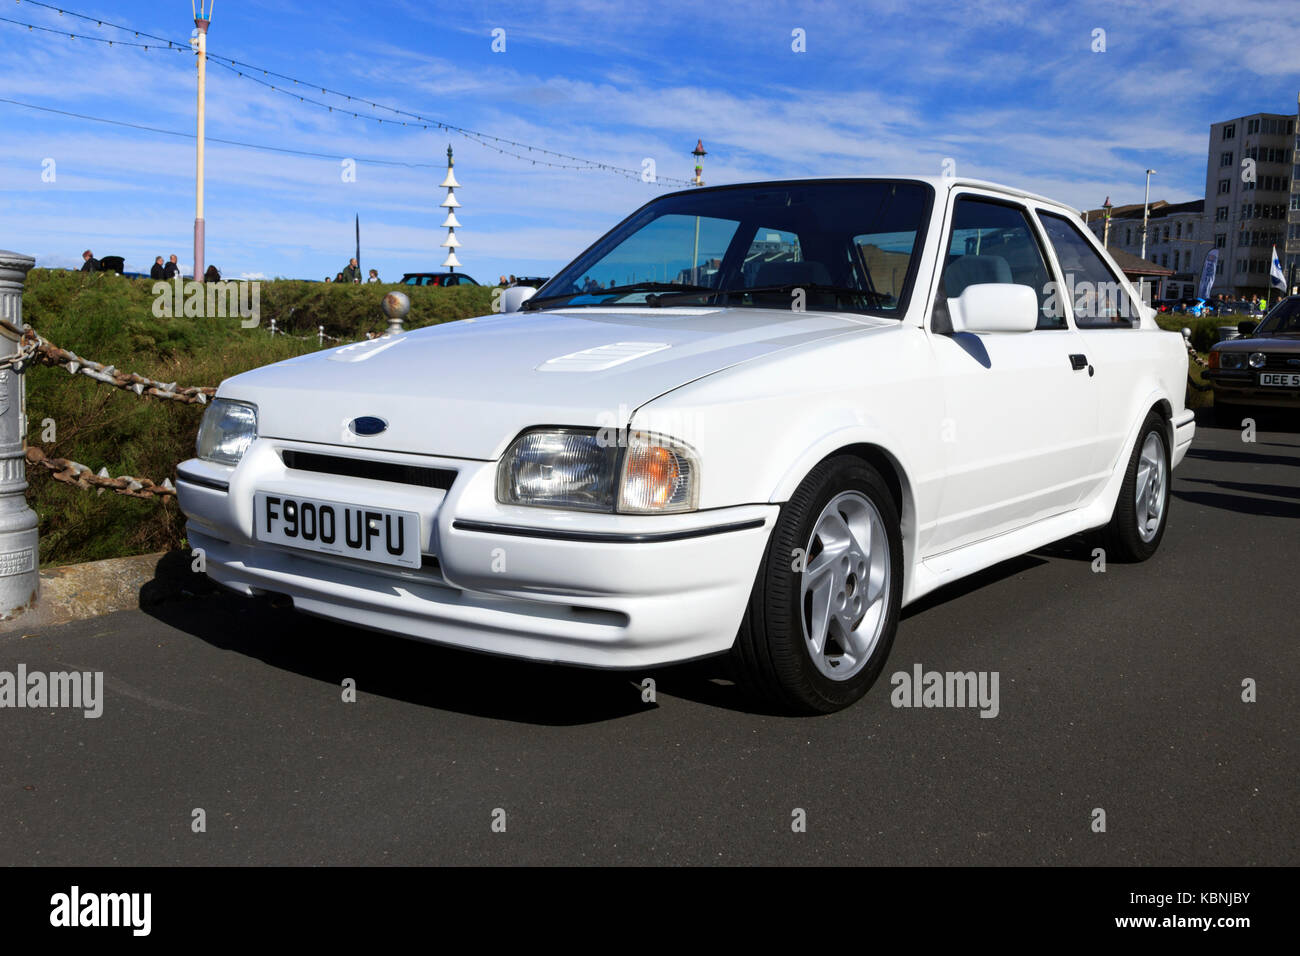 ford escort rs stock photos ford escort rs stock images alamy. Black Bedroom Furniture Sets. Home Design Ideas